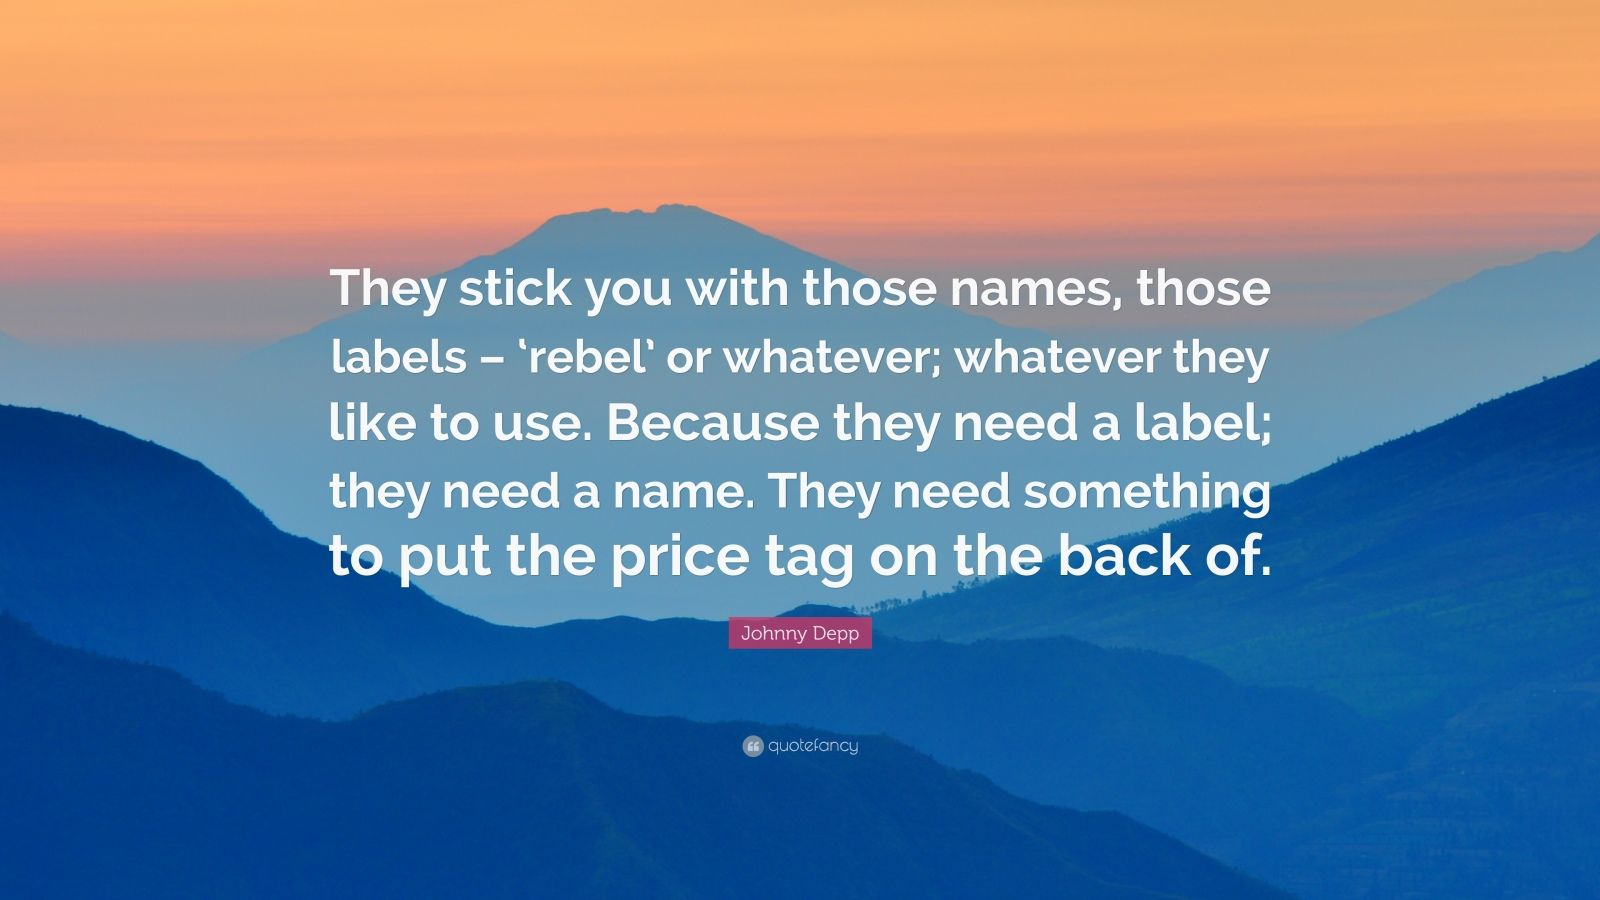 """Johnny Depp Quote: """"They stick you with those names, those labels – 'rebel' or whatever; whatever they like to use. Because they need a label; they need a name. They need something to put the price tag on the back of."""""""